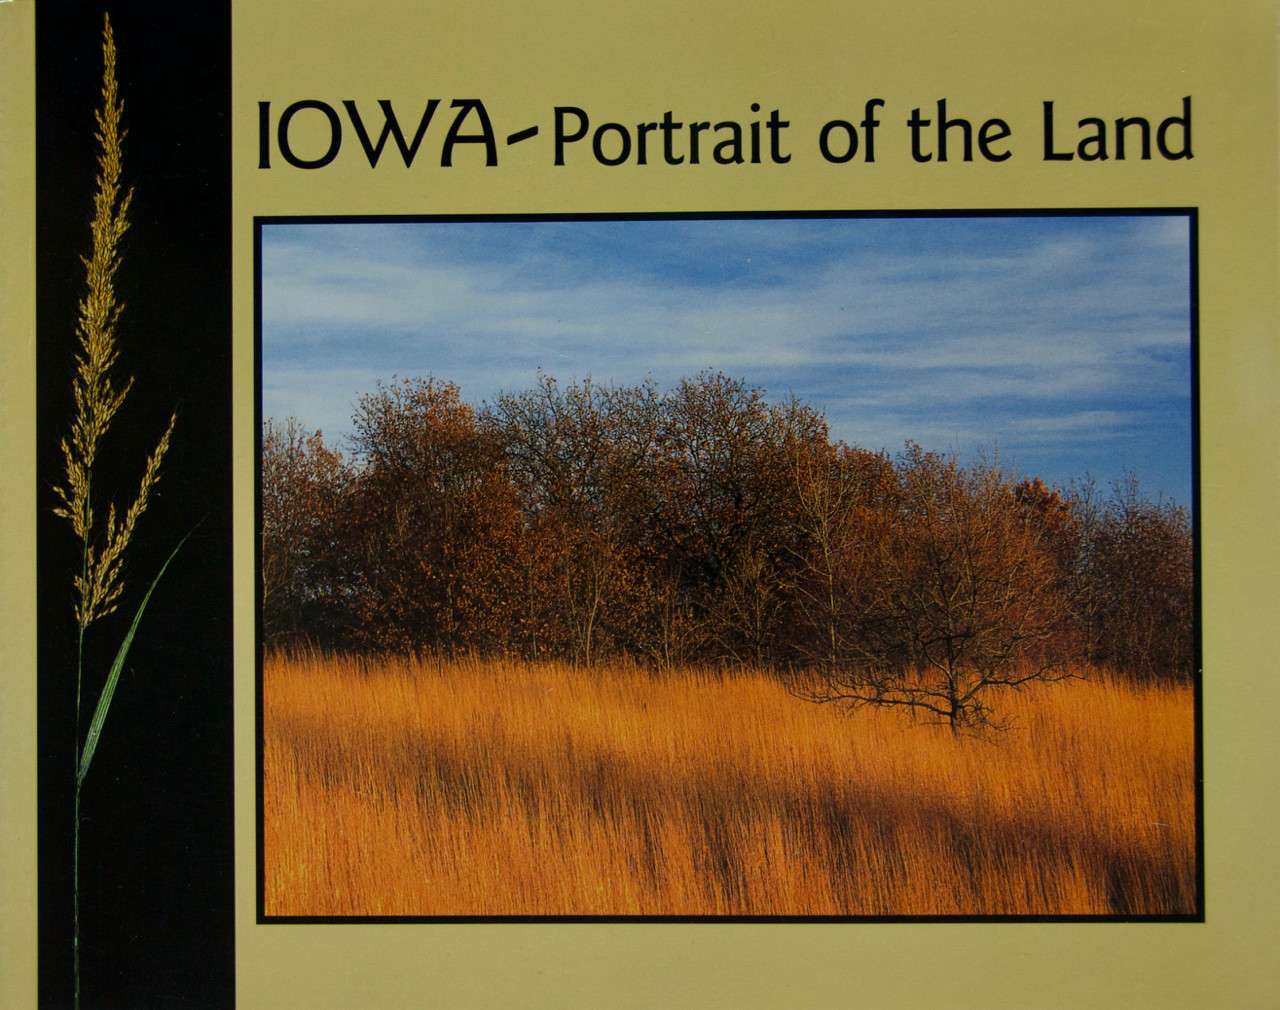 Iowa: Portrait of the Land